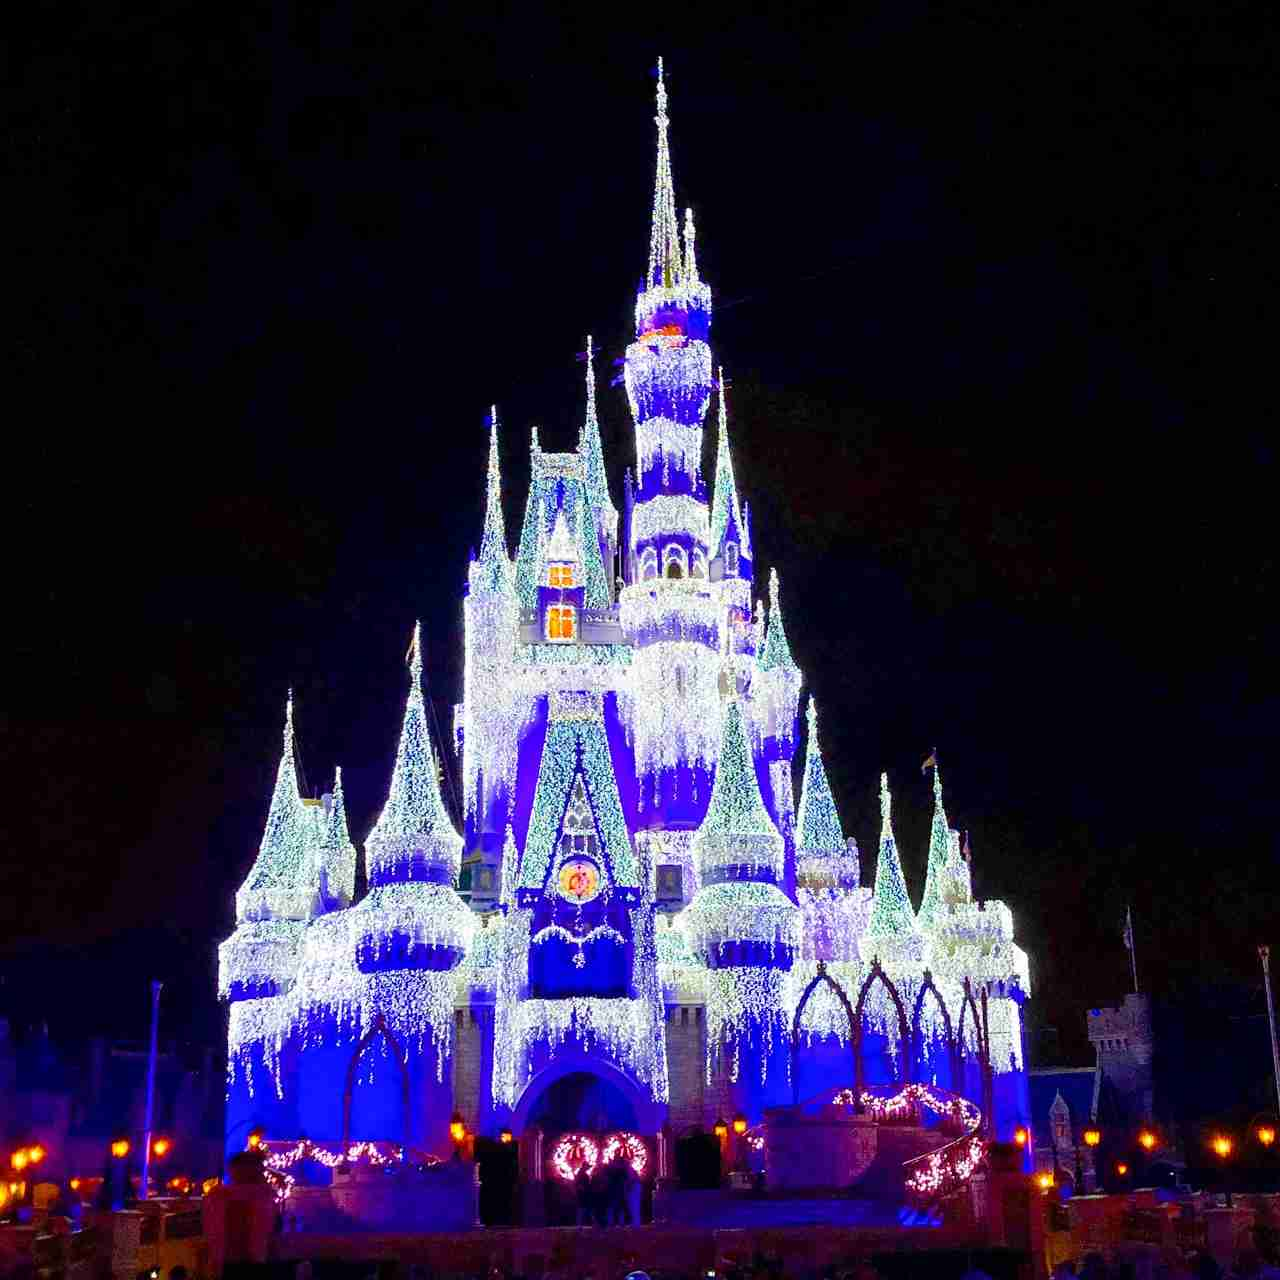 Cinderella Castle lit up at Disney World (Summer Hull / The Points Guy)